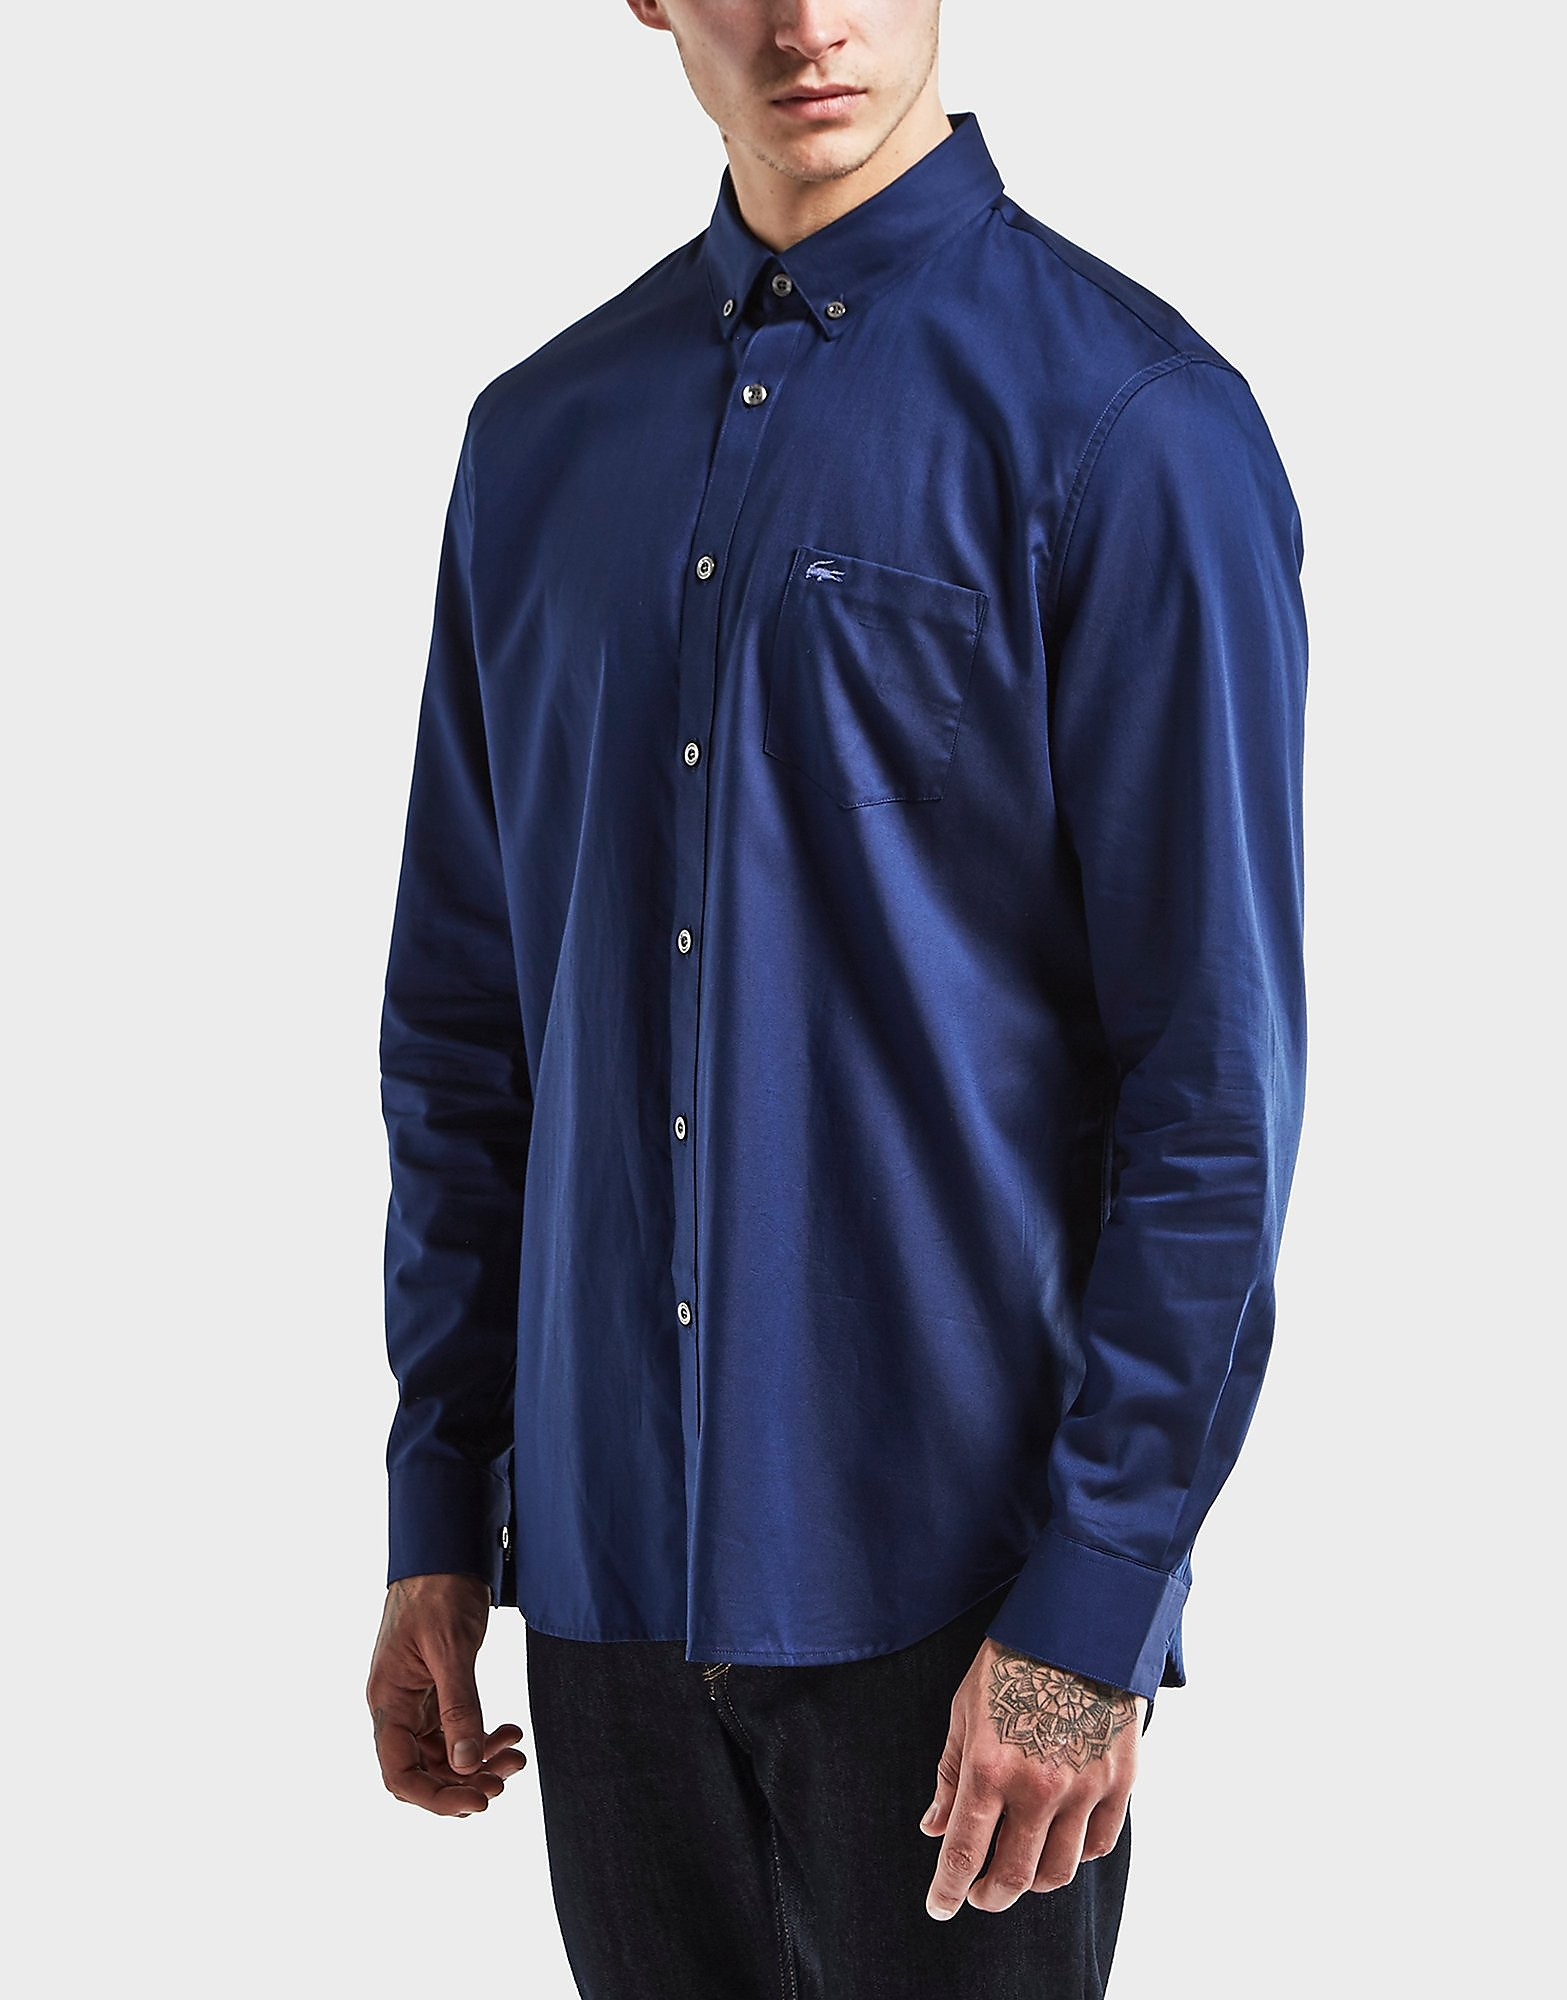 Lacoste Irredescent Long Sleeve Shirt